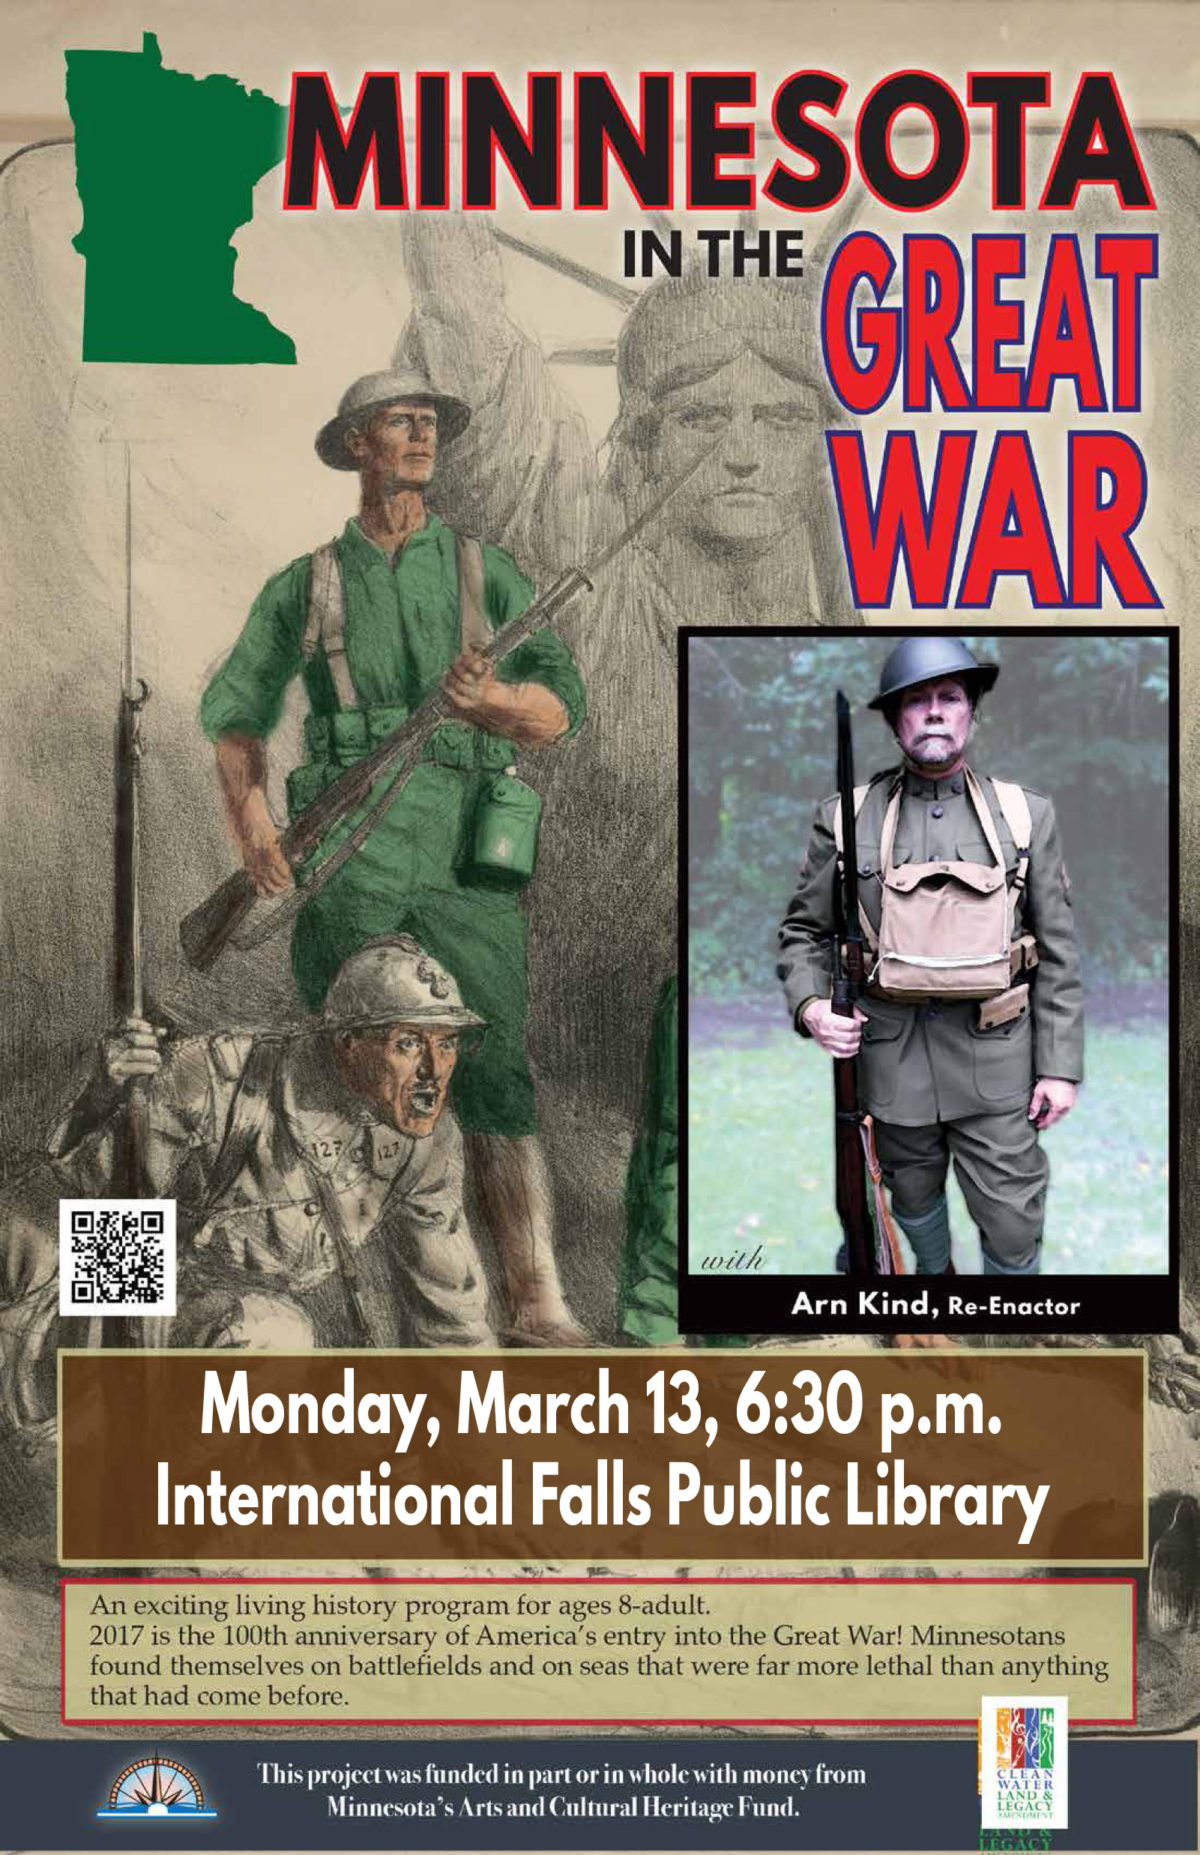 Minnesota in the Great War with Arn Kind